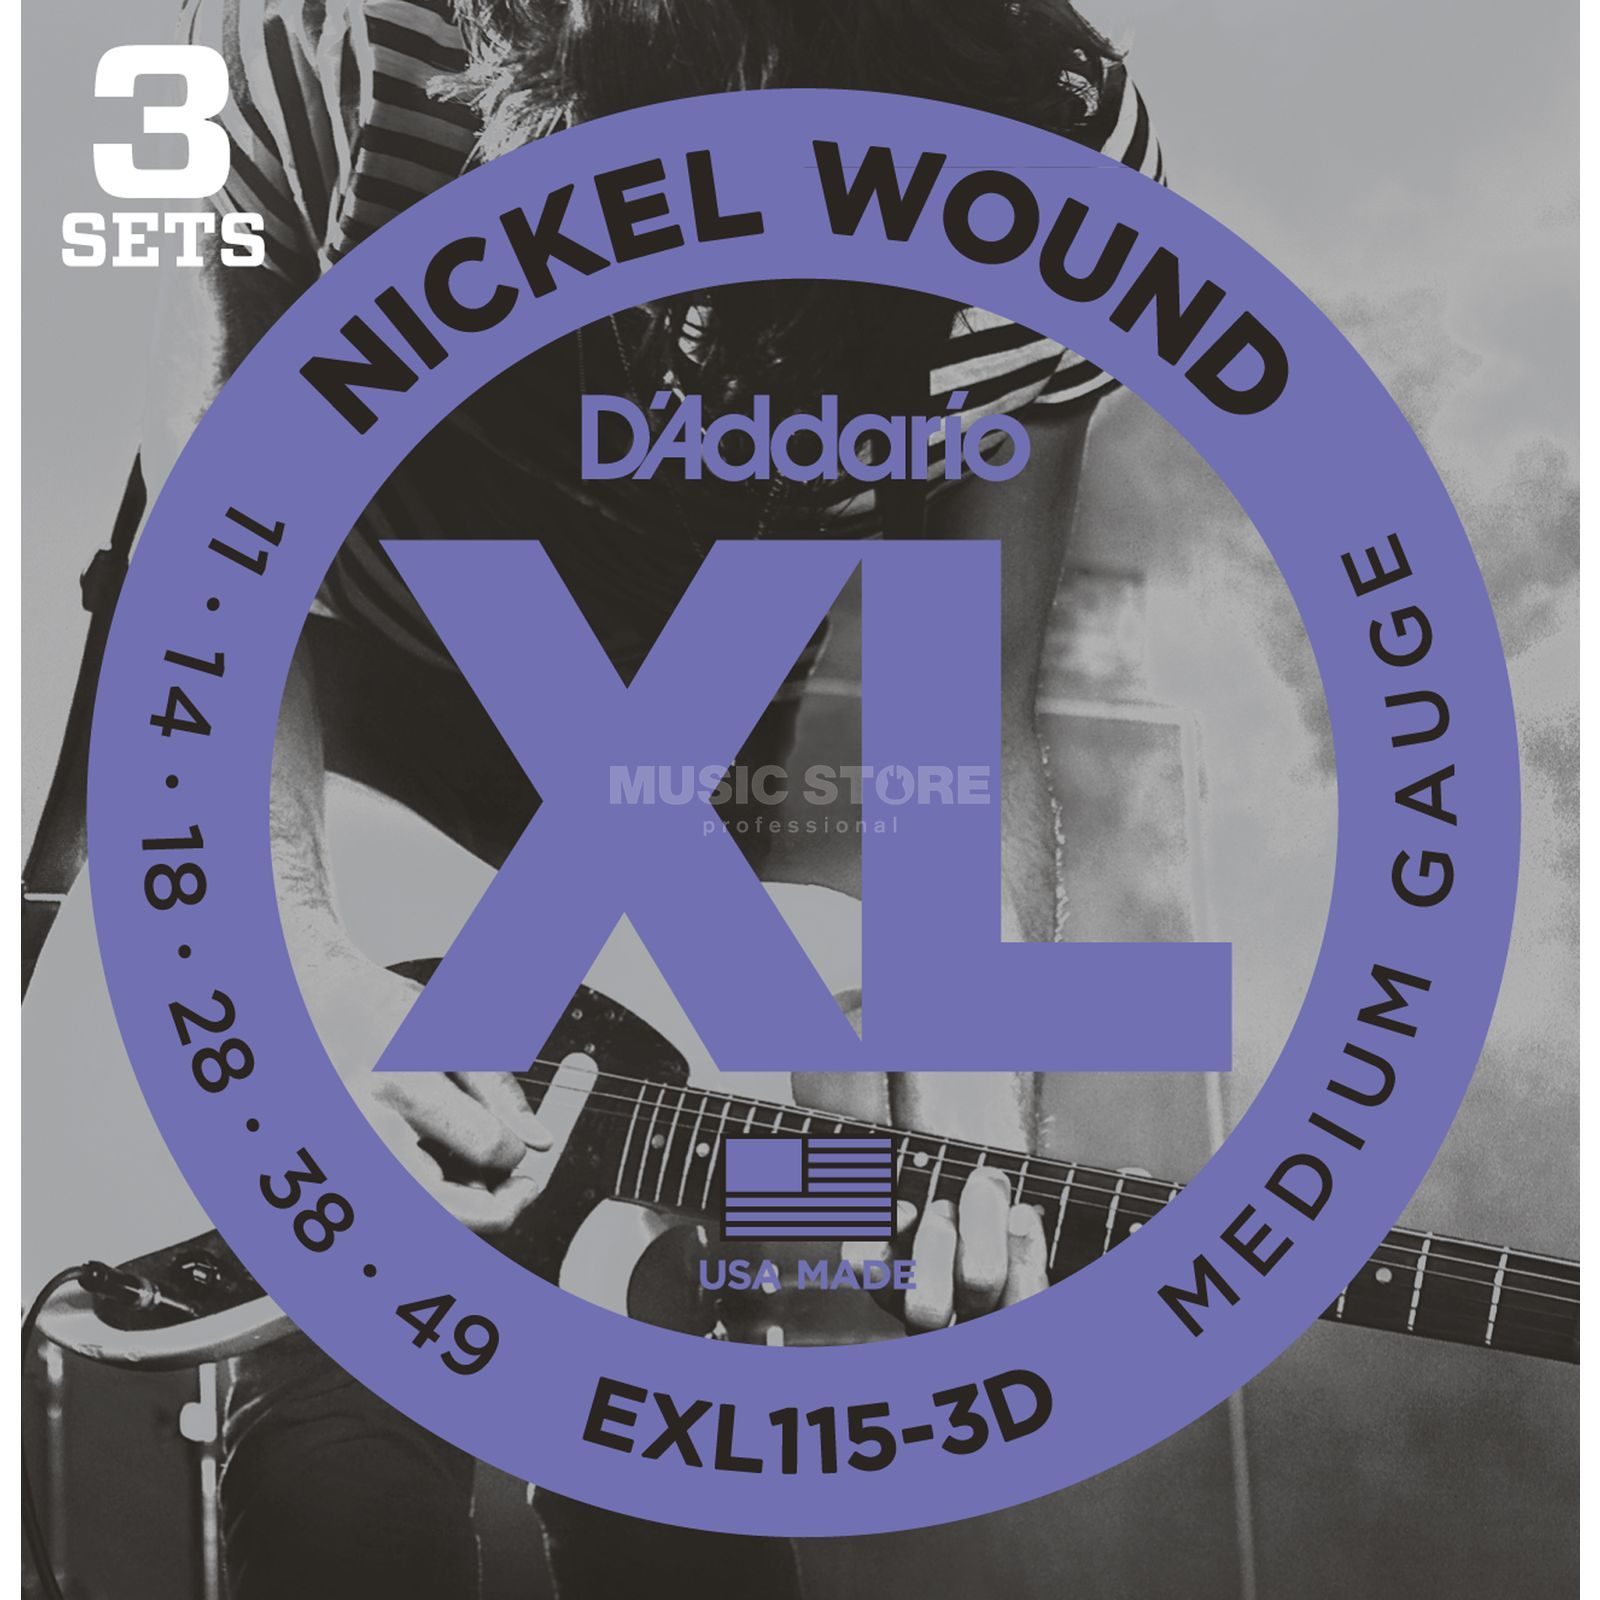 D'Addario E-Guit.Strings EXL115-3D 11-49 Nickel Wound 3 Sets Produktbillede